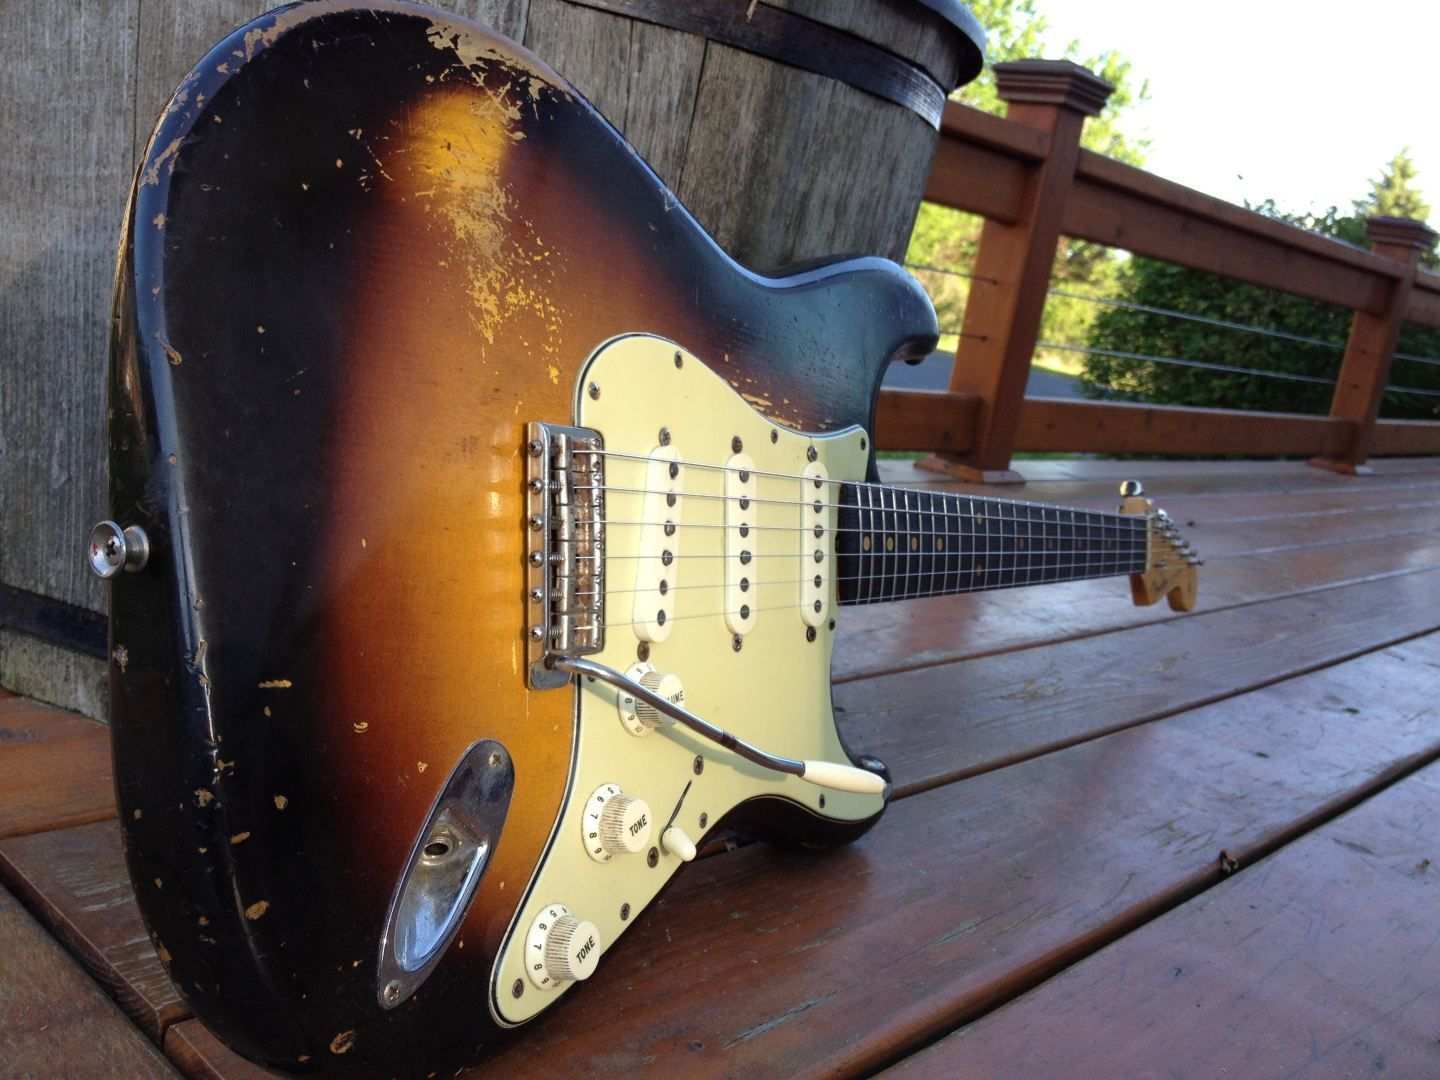 1960 Orig 2 Tone Fender Stratocaster Vintage Strat Pre Cbs Note The Master Guitar Forum Yellow Ish Sealer Or Is It Merely Stain Versus Raw Wood